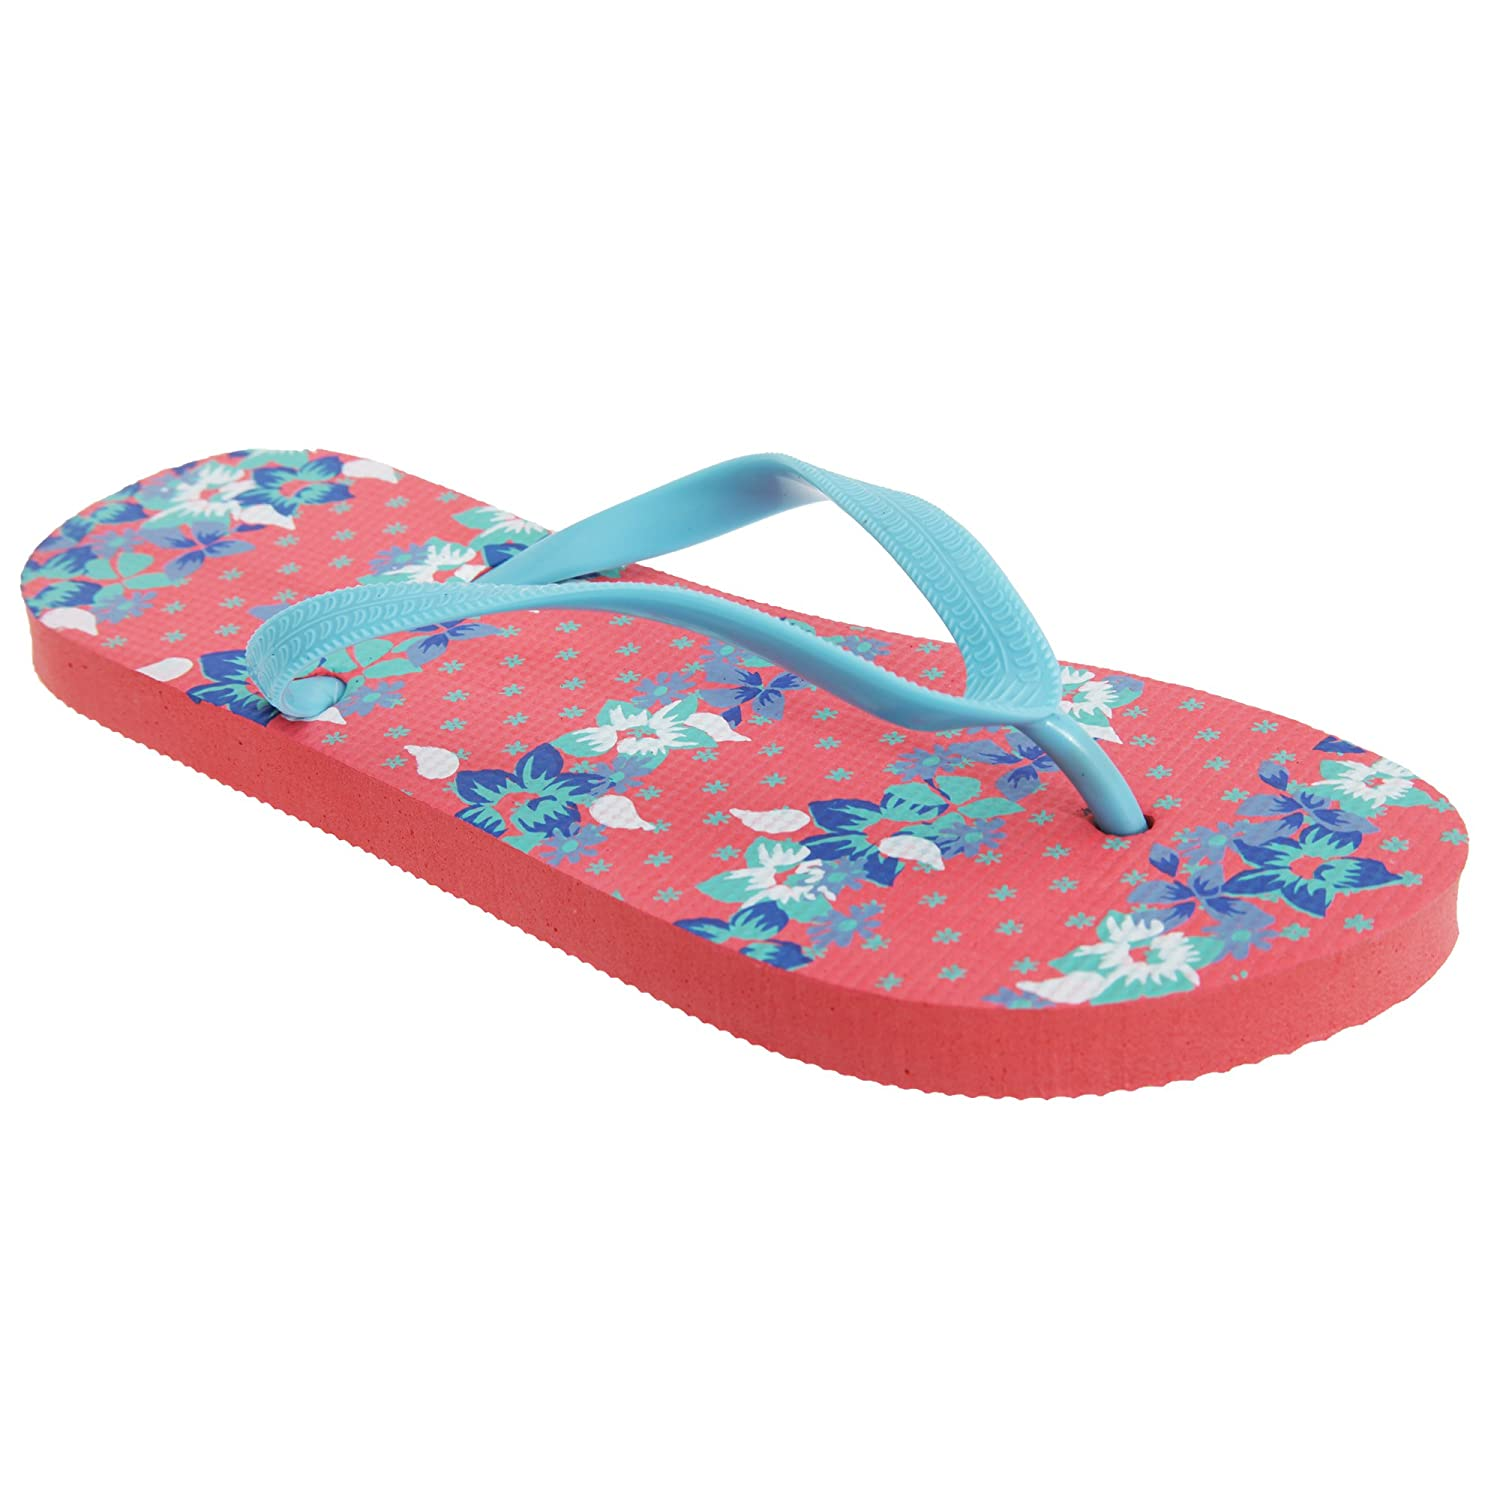 af9b388de6e092 FLOSO® Womens Ladies Floral Patterned Toe Post Flip Flops (7-8 UK)  (Coral)  Amazon.co.uk  Shoes   Bags